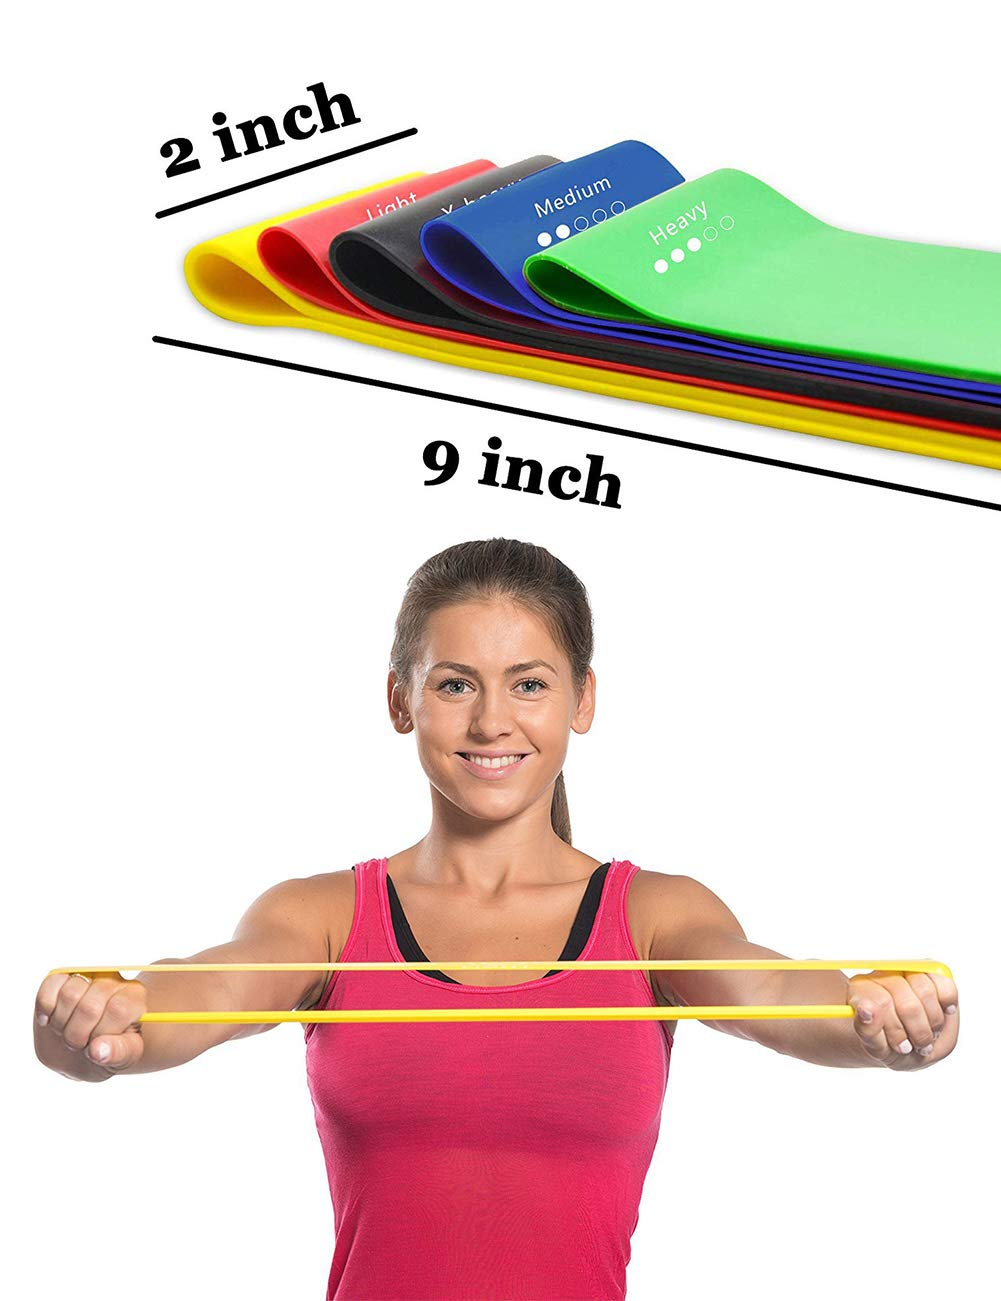 Body Power Training Homeol Thigh Latex 12 inch Long Loop X Light to X Heavy Gym Knee Butt for Yoga Carry Bag Workout Video Arm Resistance Bands Exercise Bands Set of 5 with Instruction Guide Leg